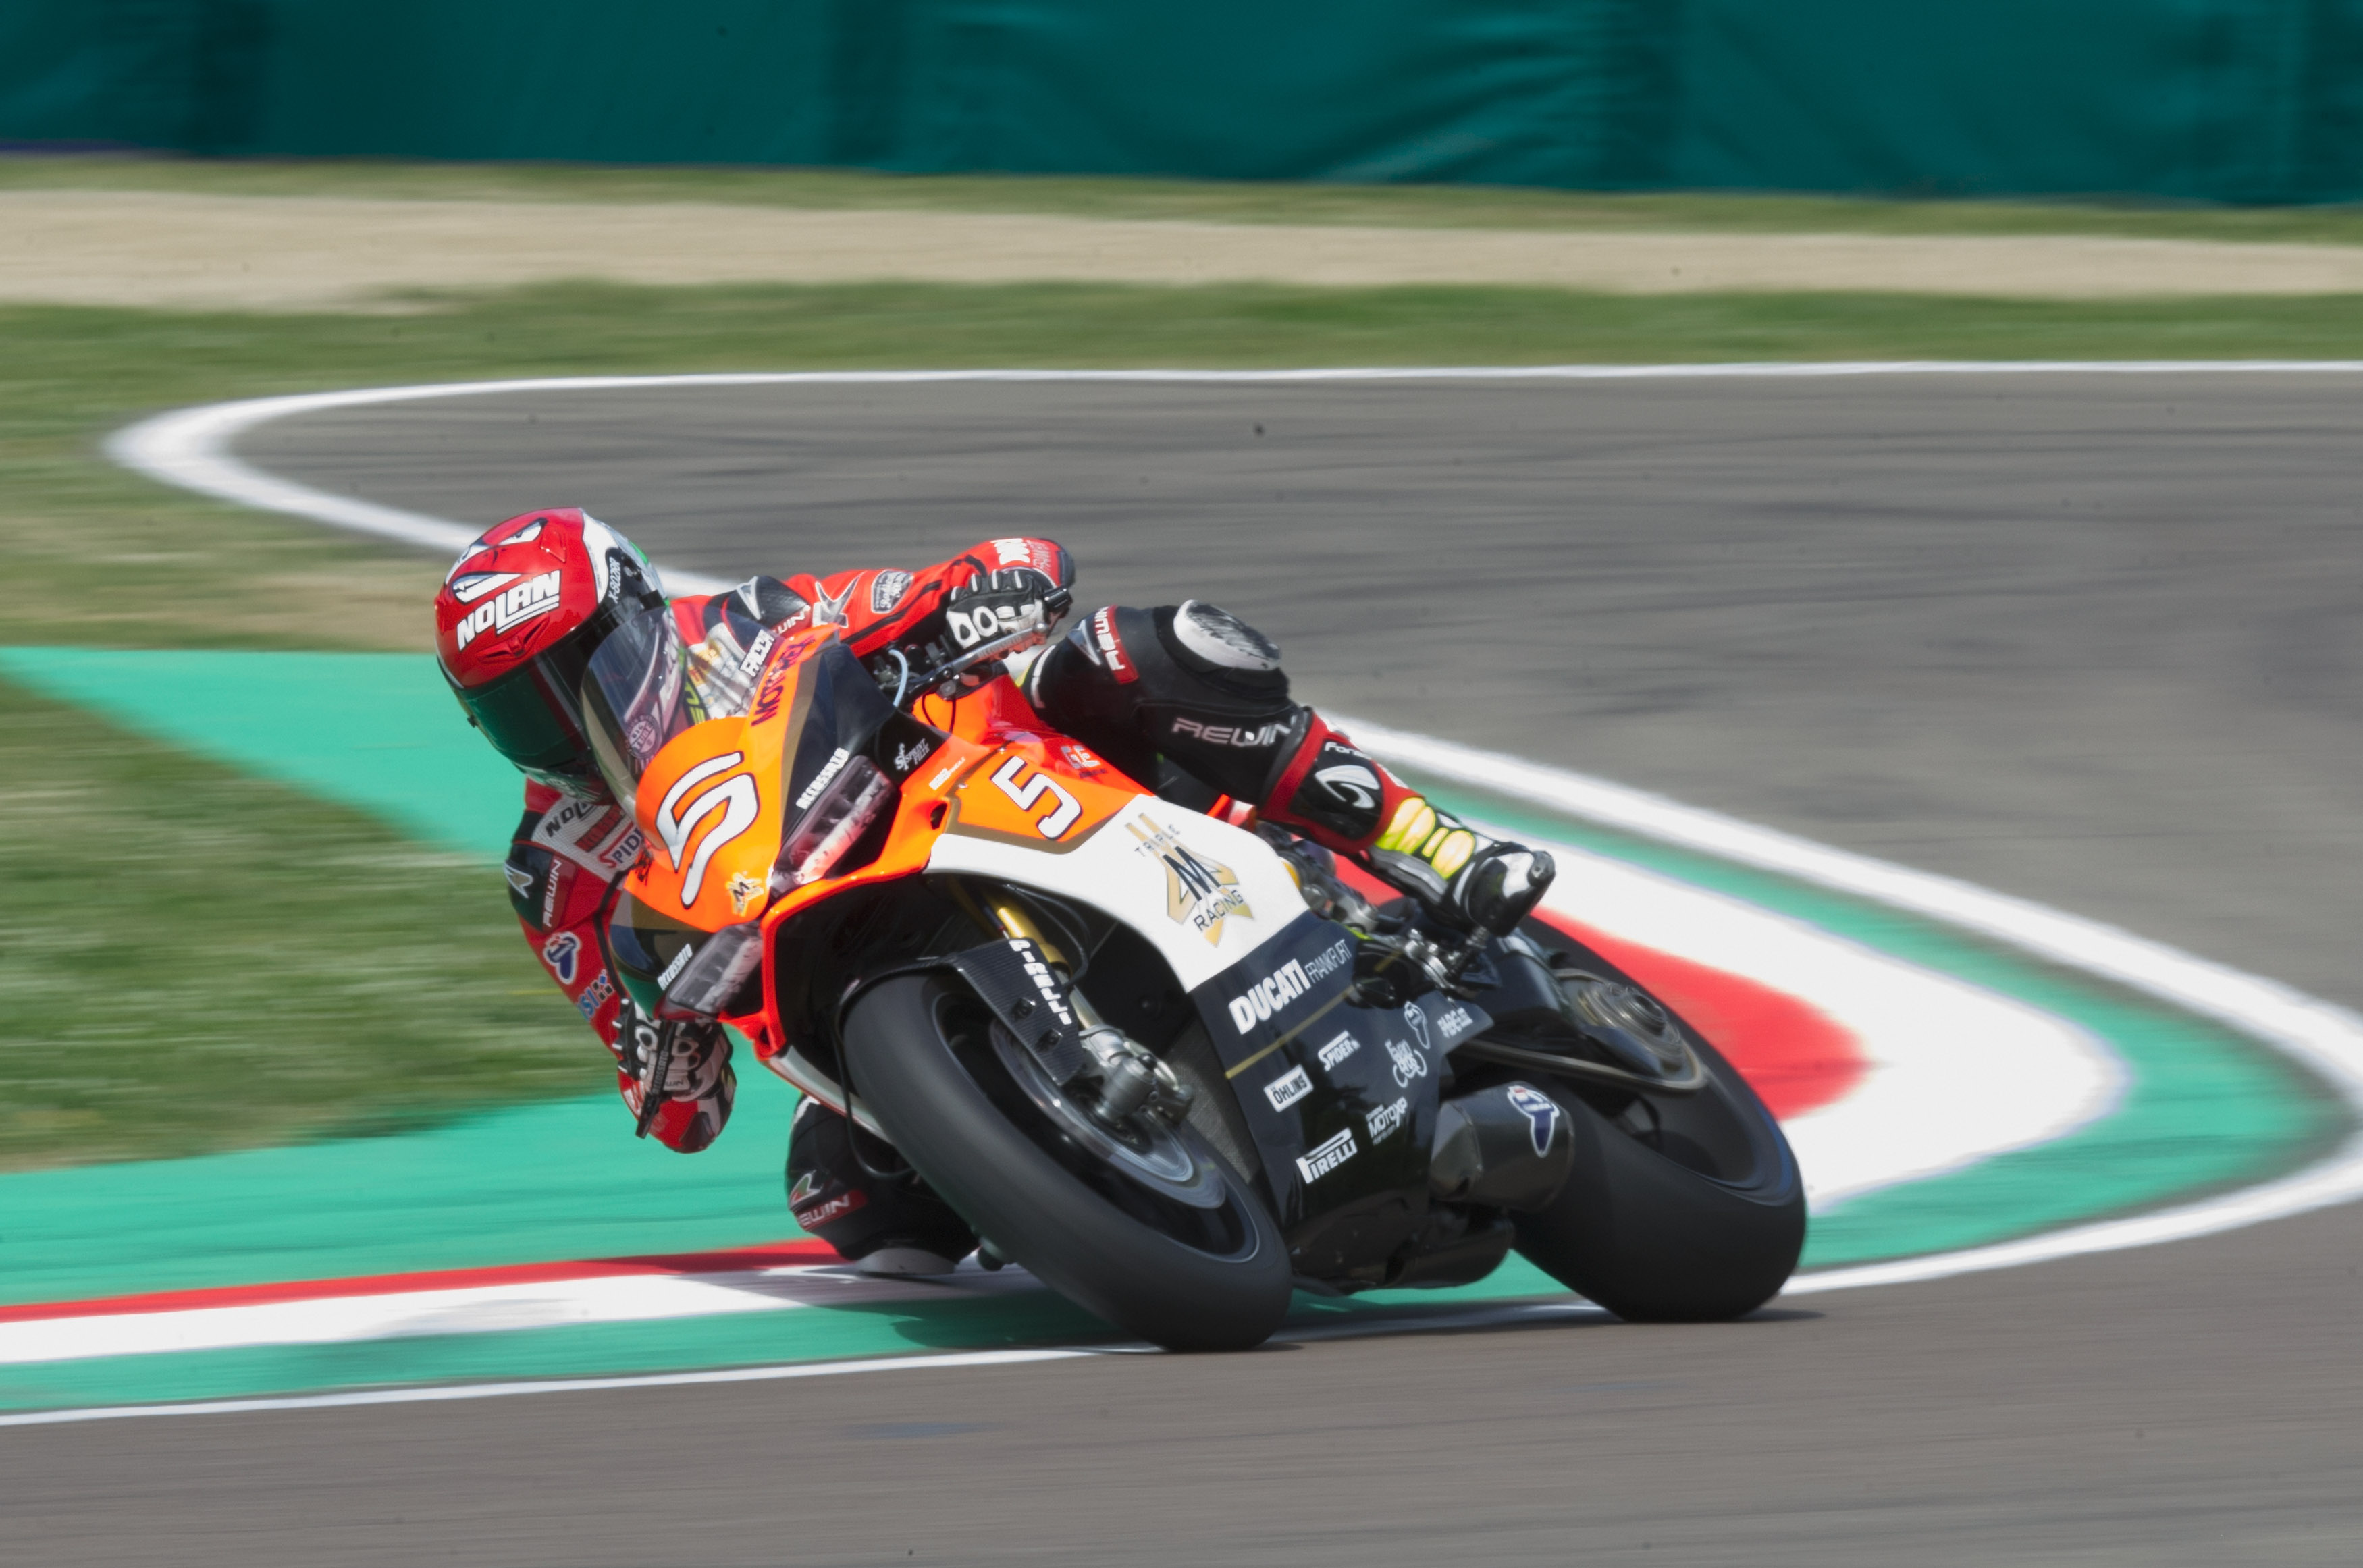 IMOLA, ITALY - APRIL 30: Marco Faccani of Italy and Triple M Racing rounds the bend during the World Superbikes - Qualifying at Enzo & Dino Ferrari Circuit on April 30, 2016 in Imola, Italy.  (Photo by Mirco Lazzari gp/Getty Images)